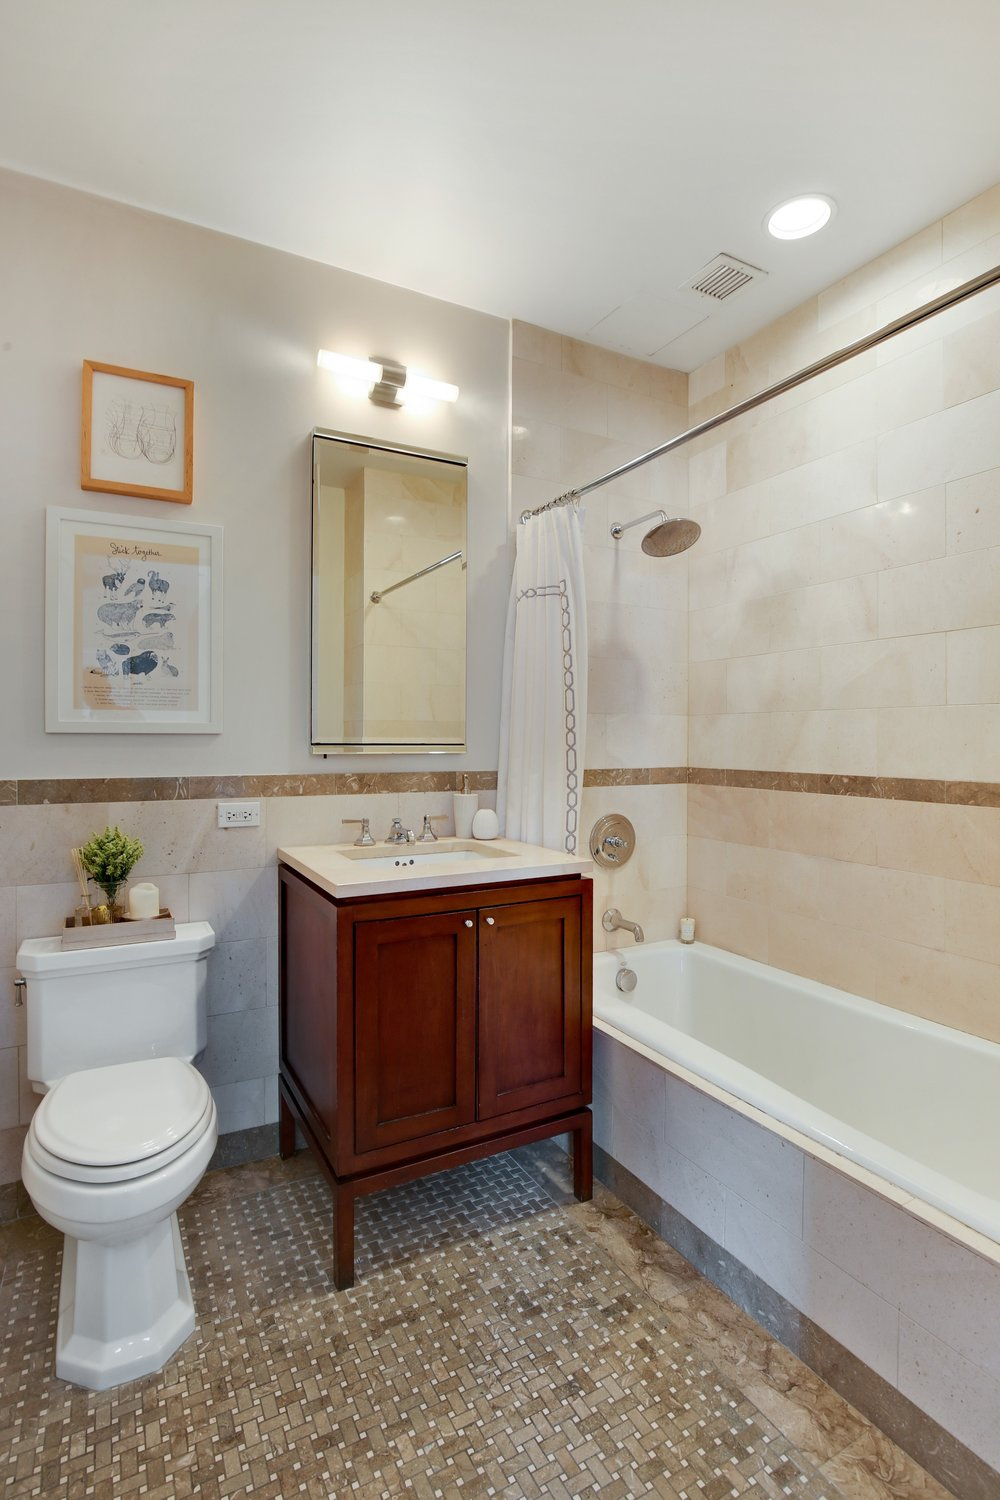 09_1HansonPl_Unit10B_8_Bathroom_HiRes.jpg